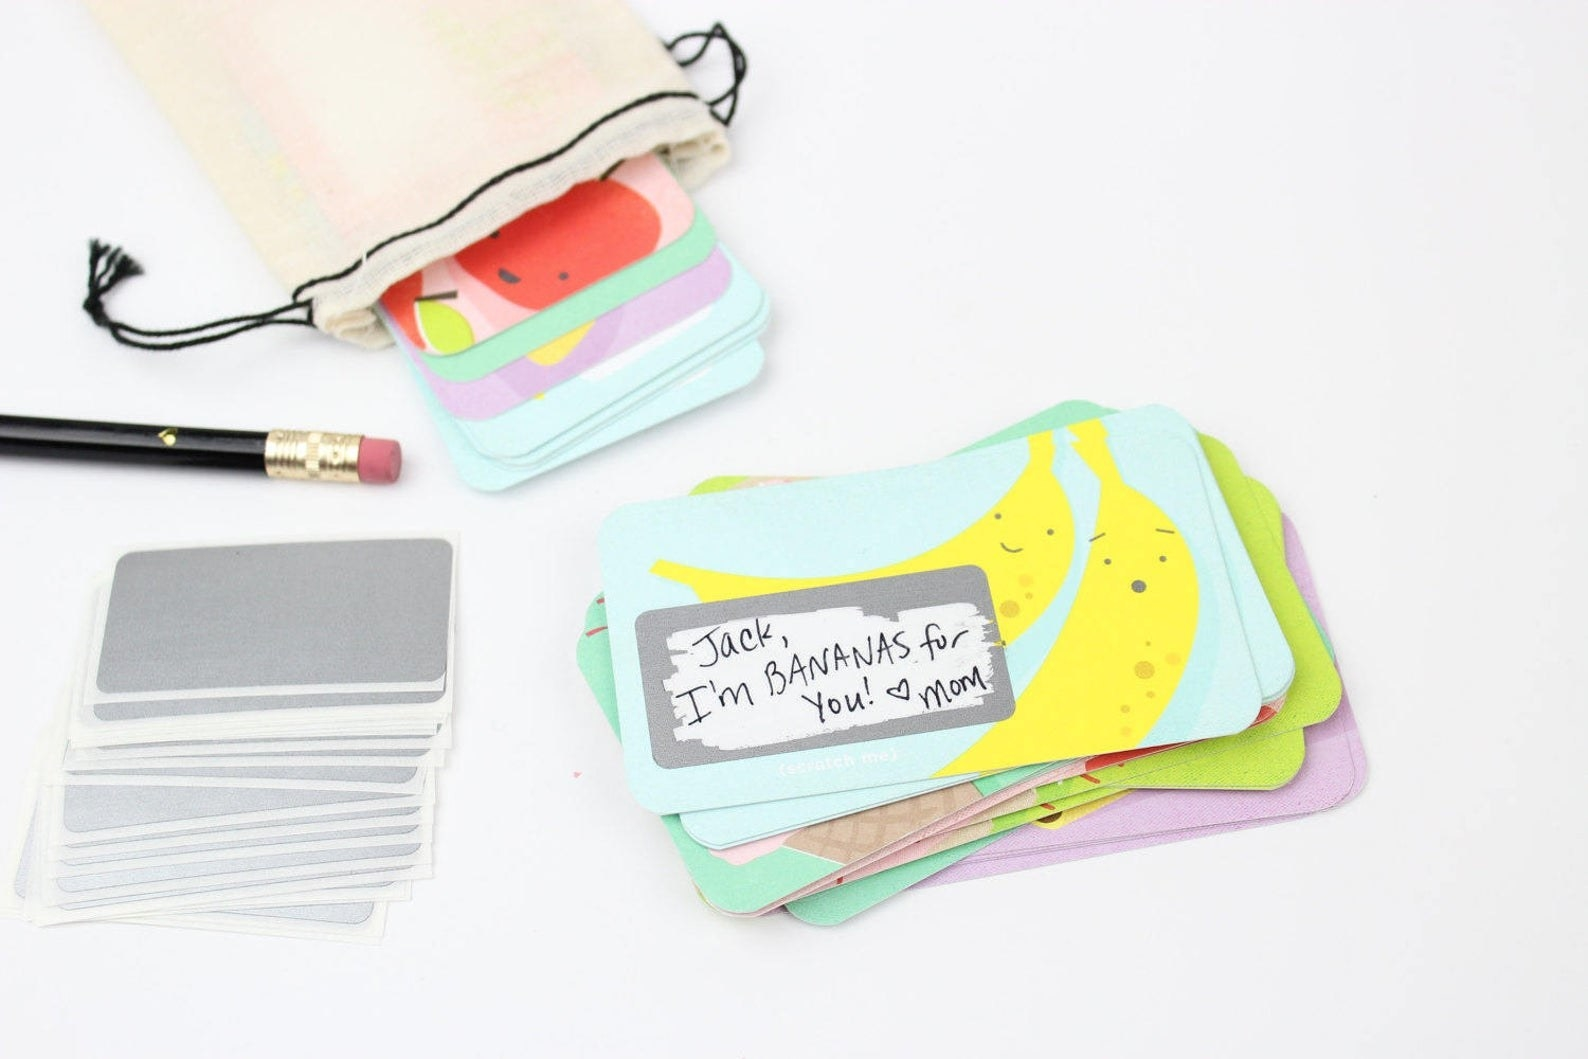 The set of scratch-off lunchbox notes